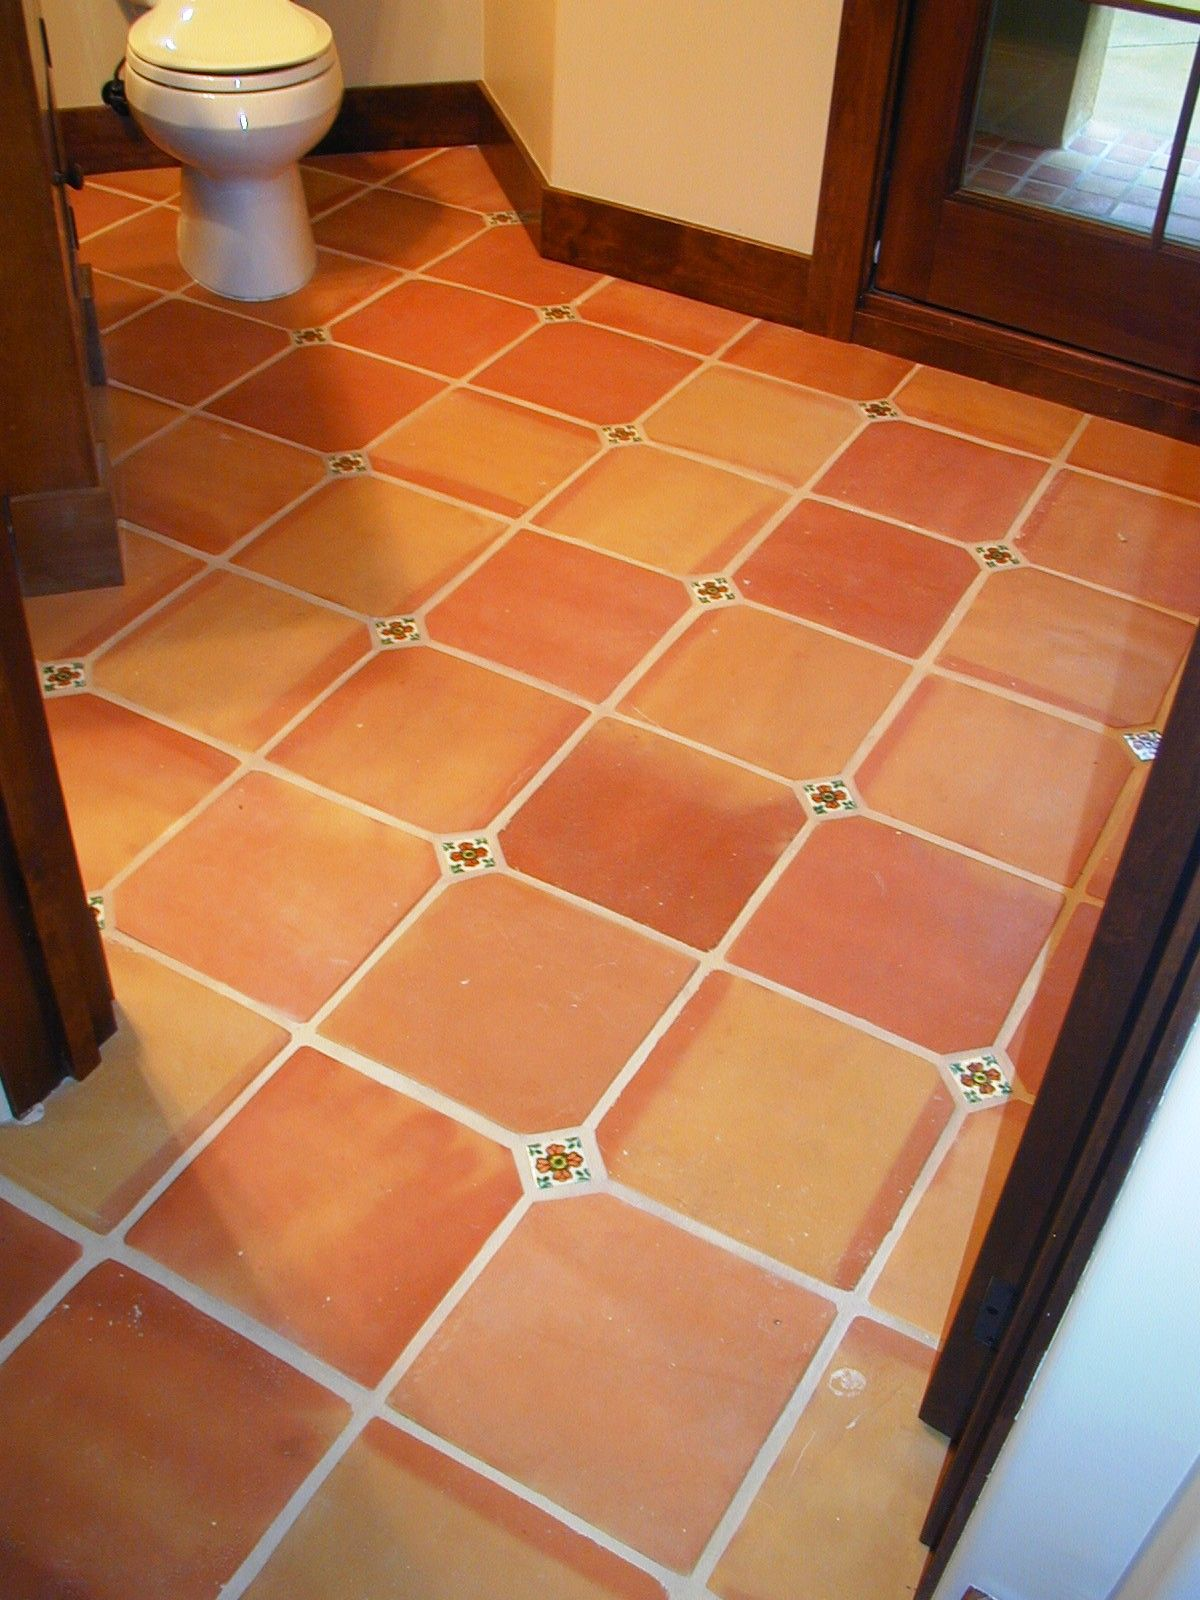 12x12 traditional terra cotta tiles with a 2x2 insert cut Spanish clay tile